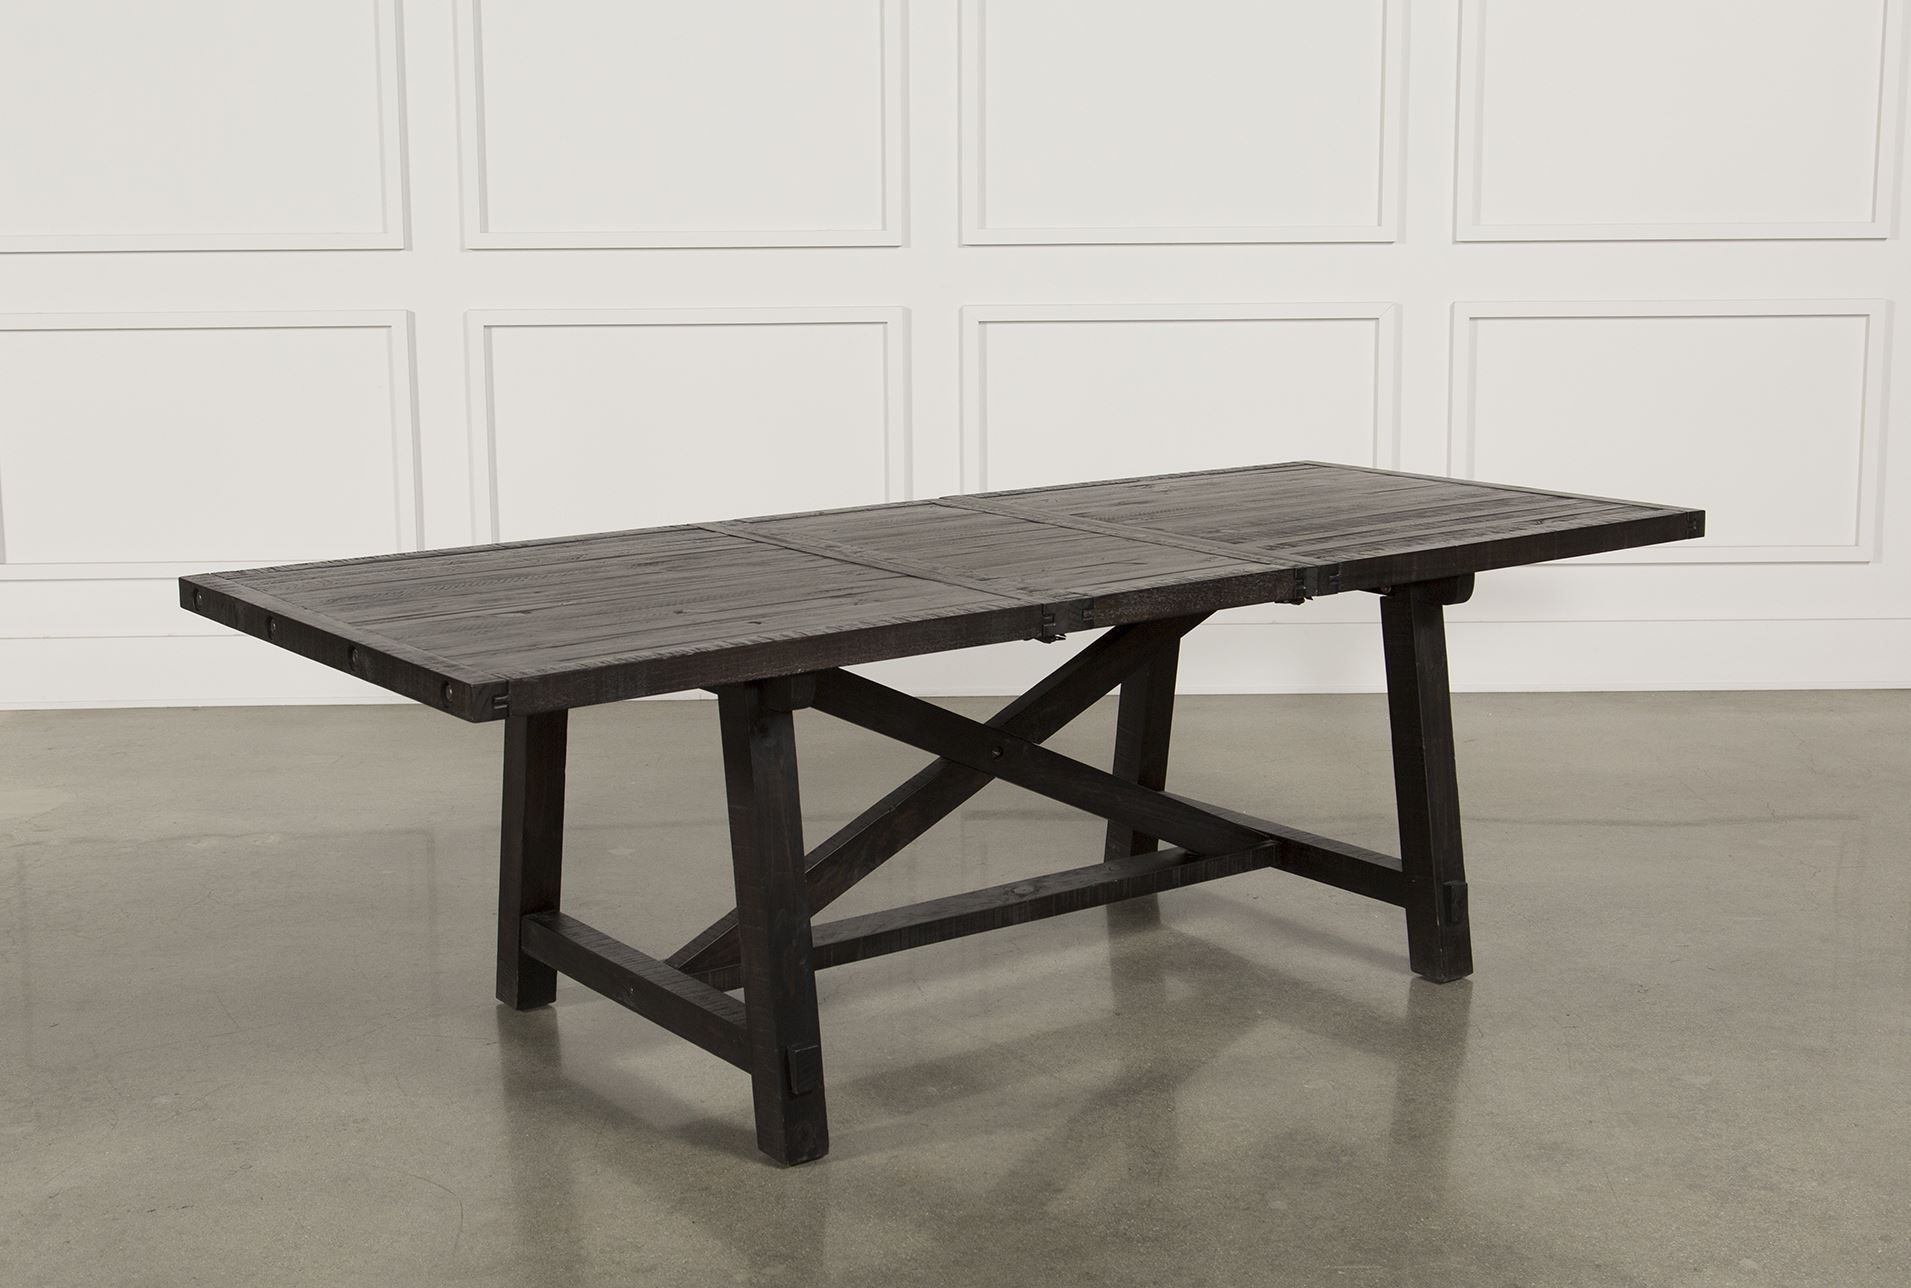 Jaxon Extension Rectangle Dining Table | 36Th Place | Pinterest With Regard To Most Popular Jaxon Extension Rectangle Dining Tables (Image 11 of 20)